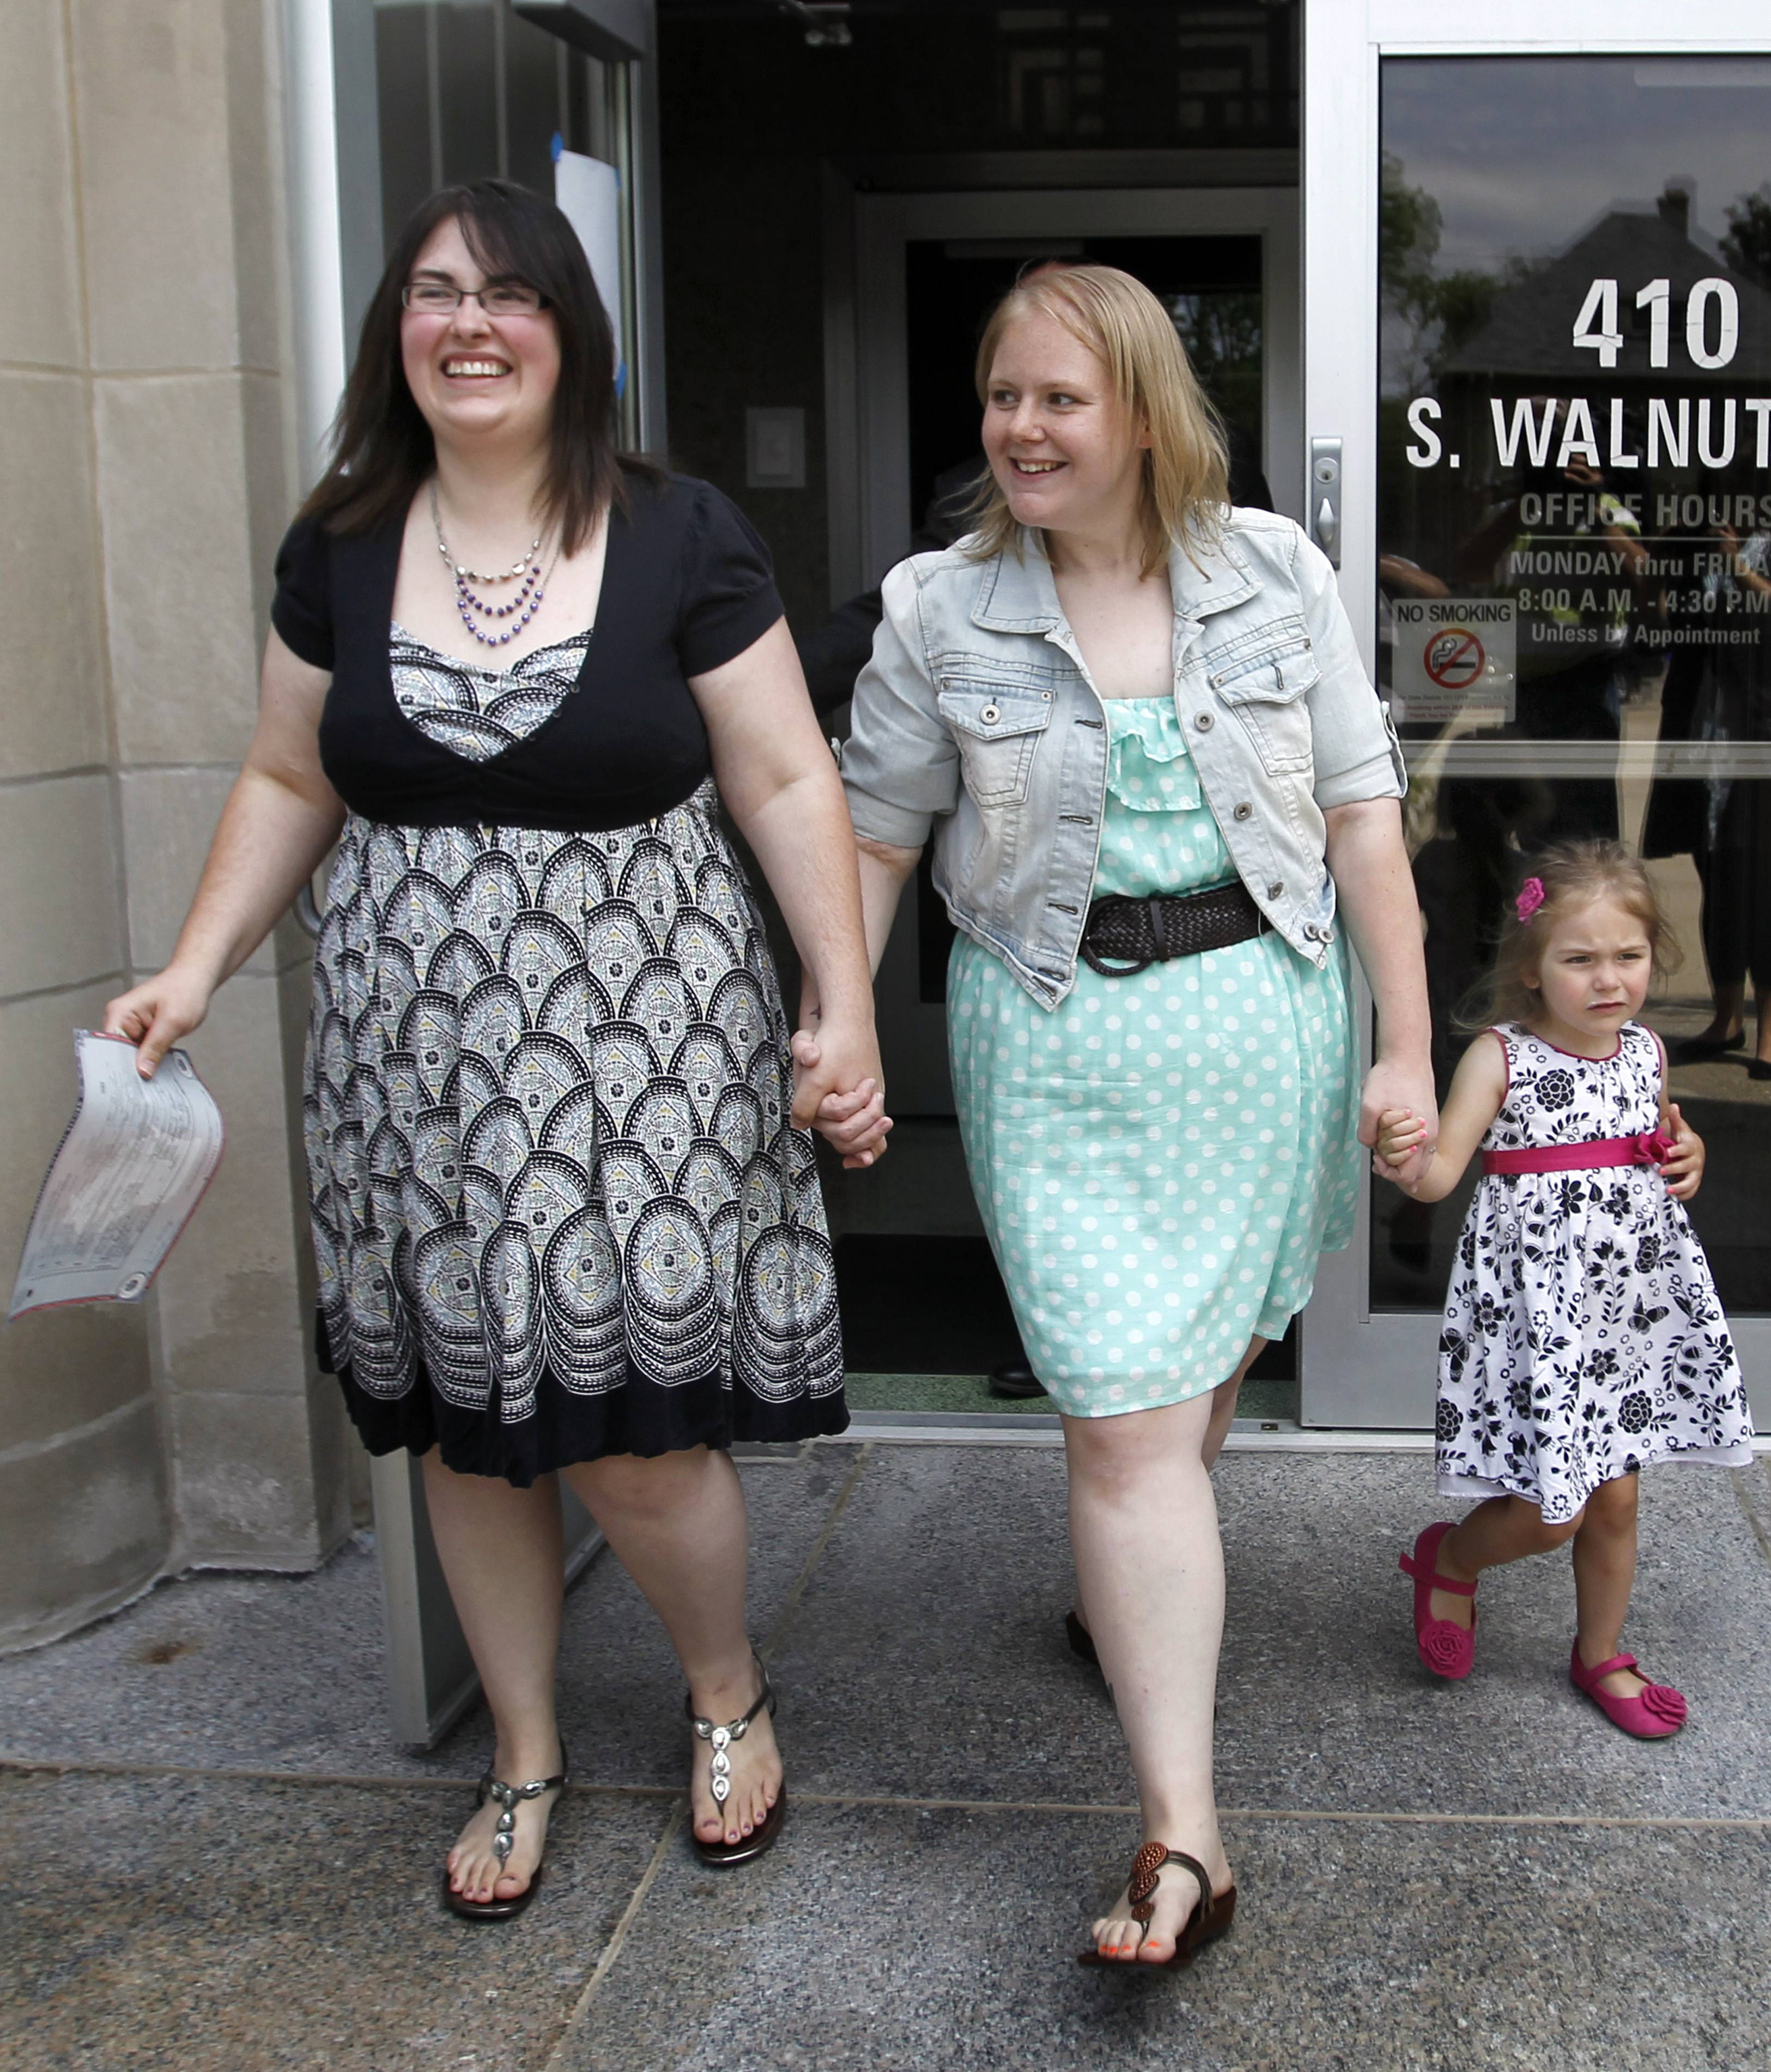 Heather, left, and Natalie Starr, with daughter Libby, were married on the steps of the Outagamie County administration building on Monday in Appleton, Wis. They are the first same-sex couple to be married in the county.